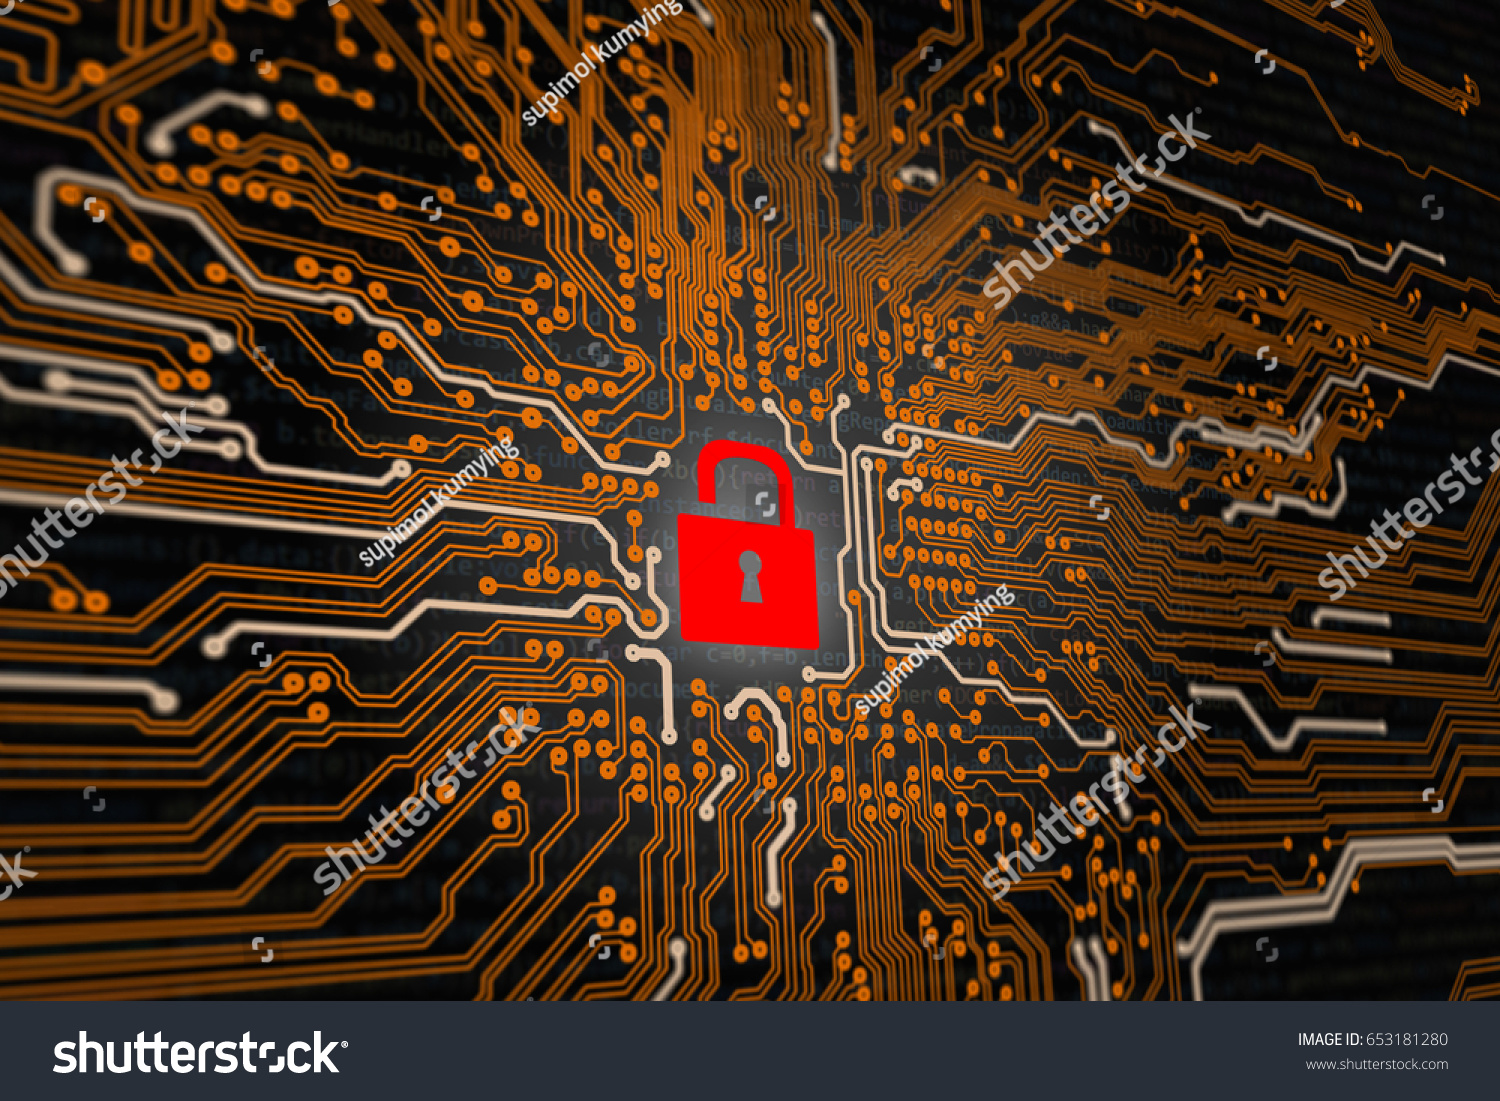 hacked symbol on computer orange technology stock illustration 653181280hacked symbol on computer orange technology background circuit board with an open red padlock 3d